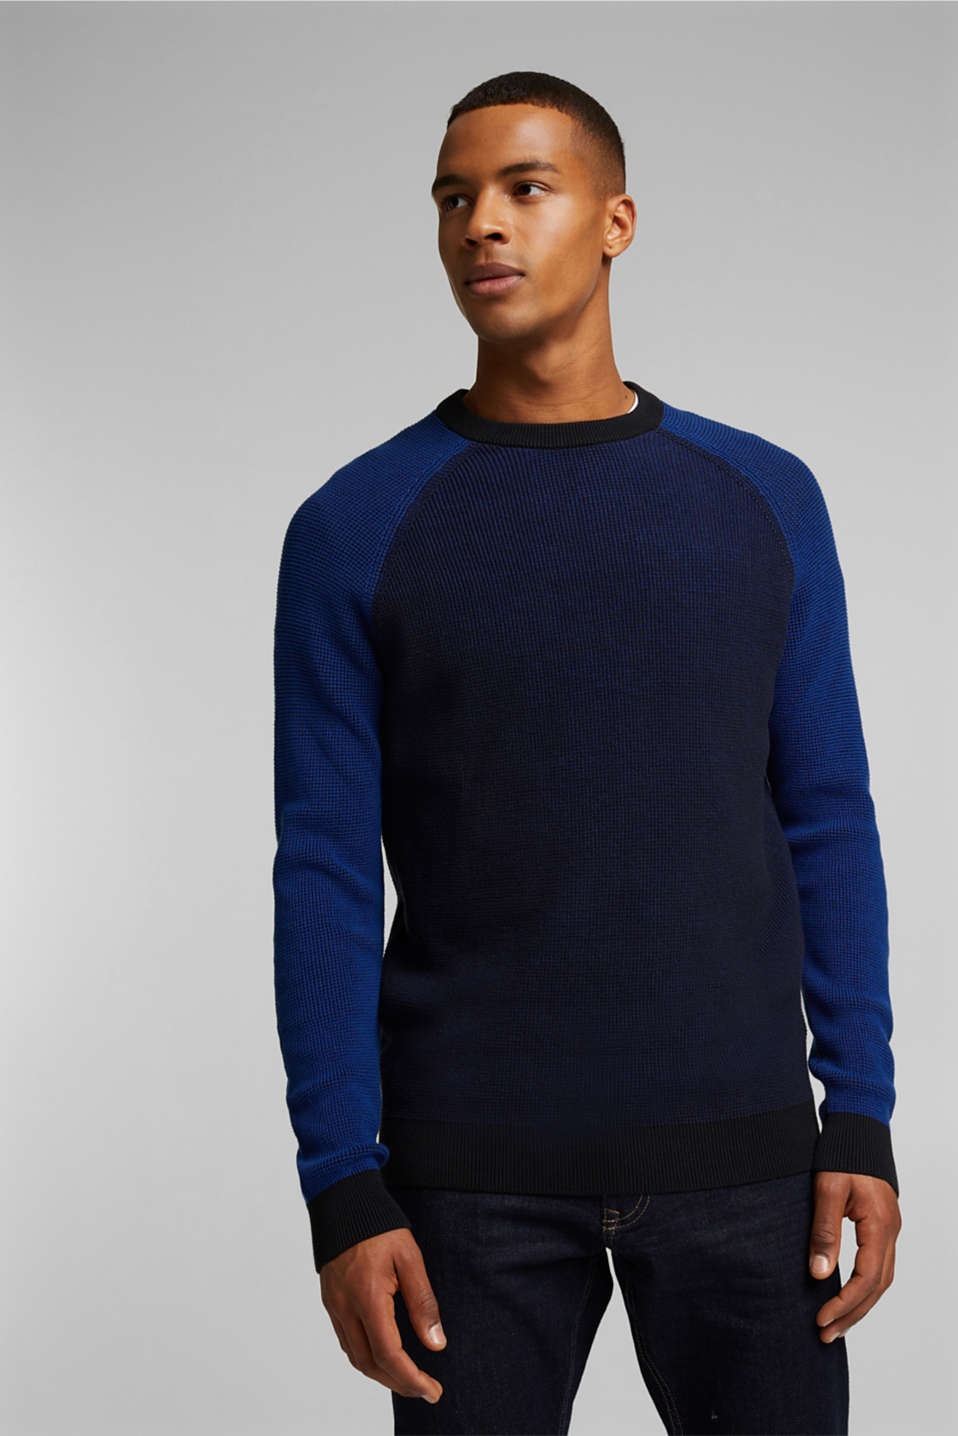 edc - Jumper made of 100% organic cotton